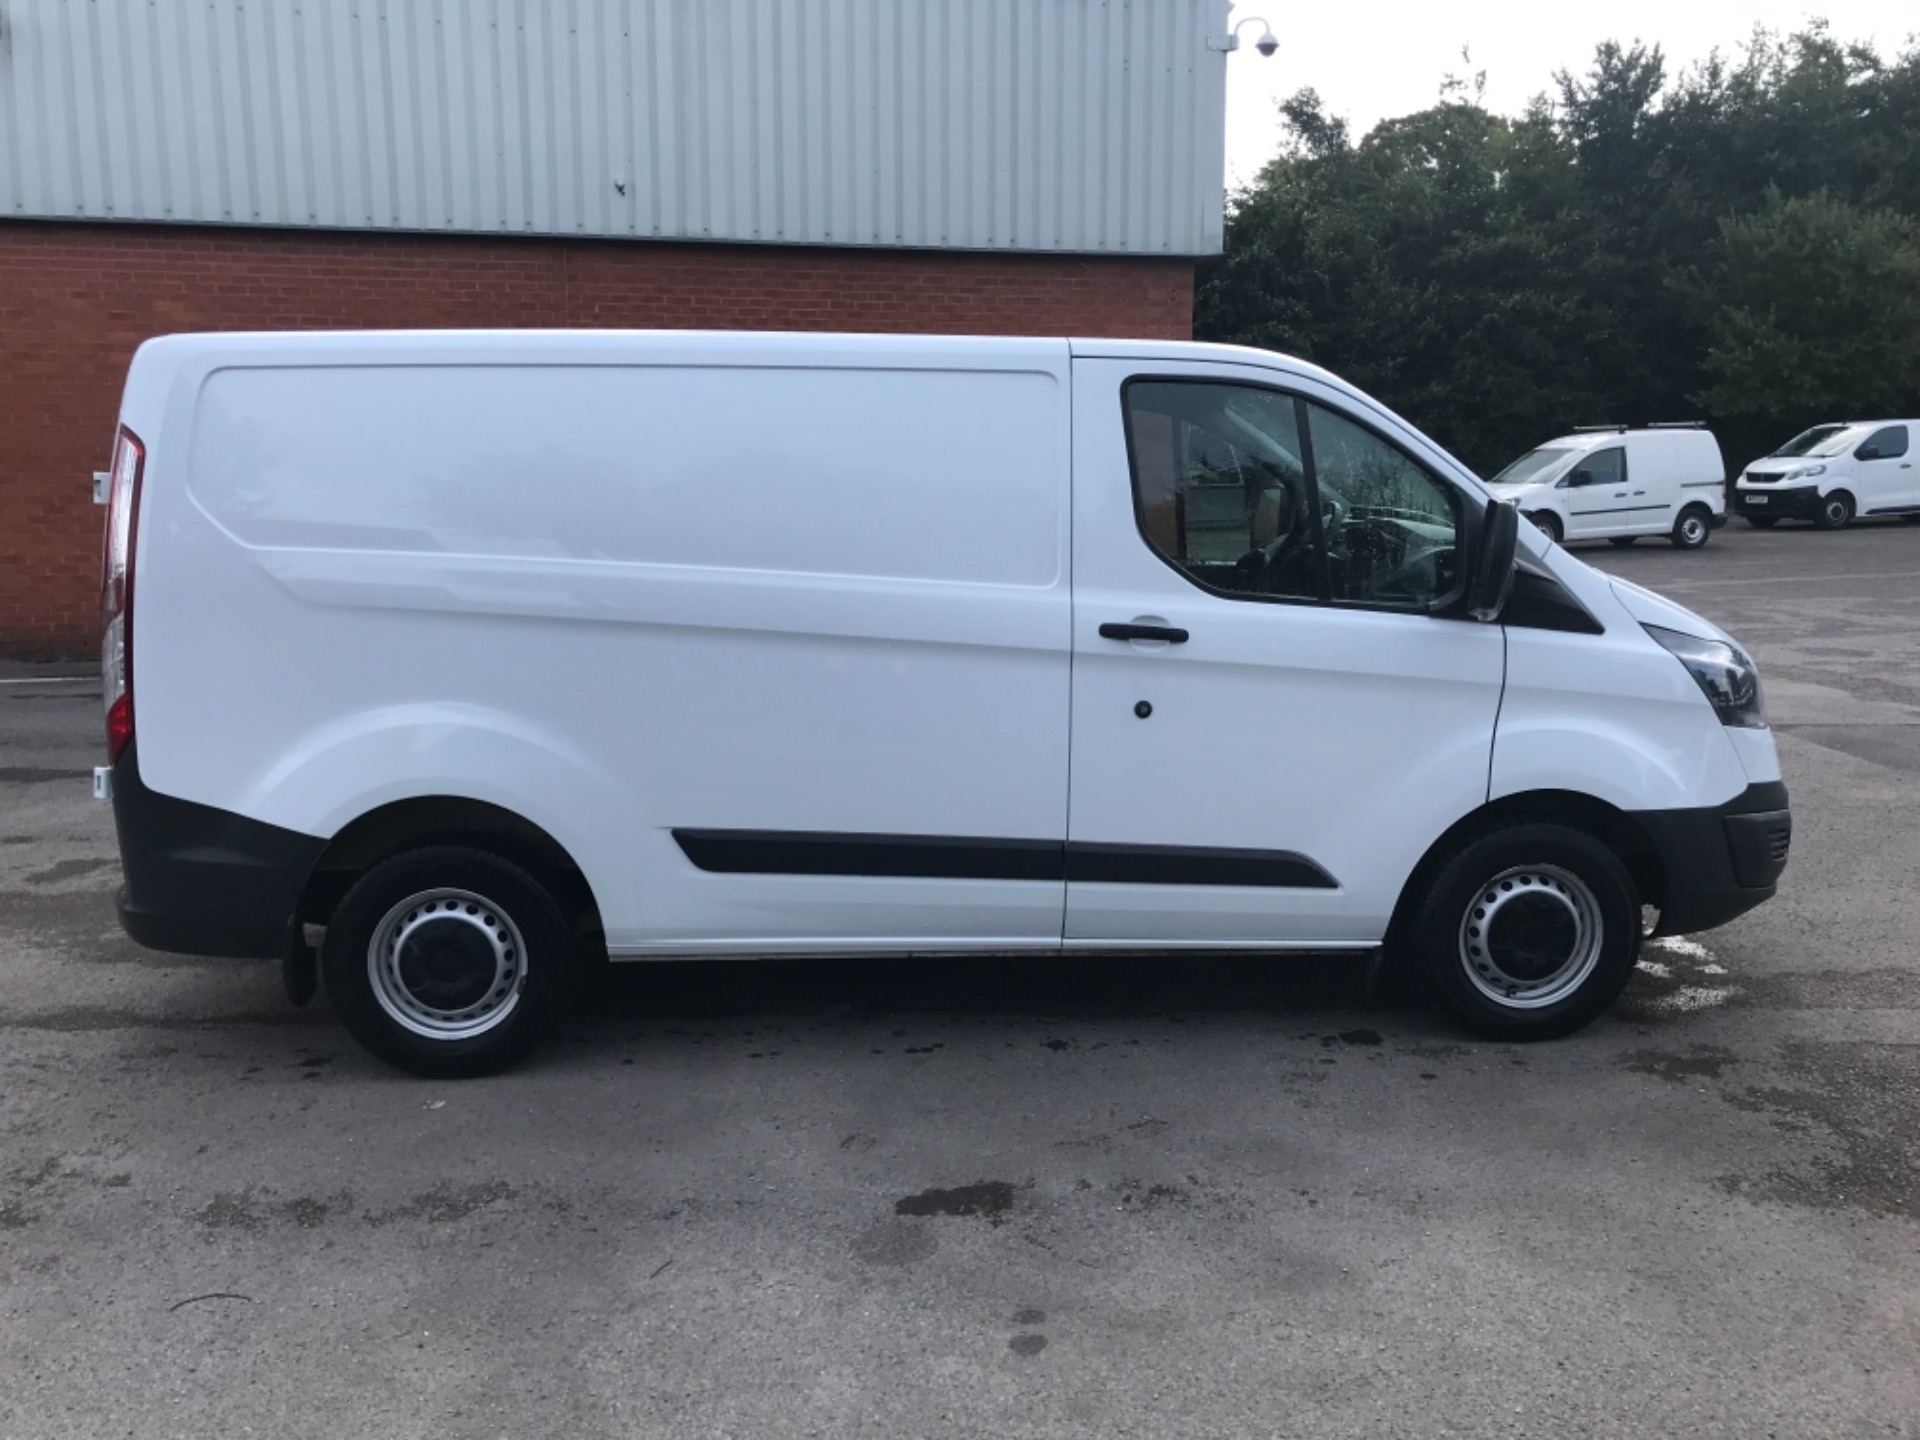 2017 Ford Transit Custom 2.0 Tdci 105Ps Low Roof Van Euro 6 (BN17XKJ) Image 8